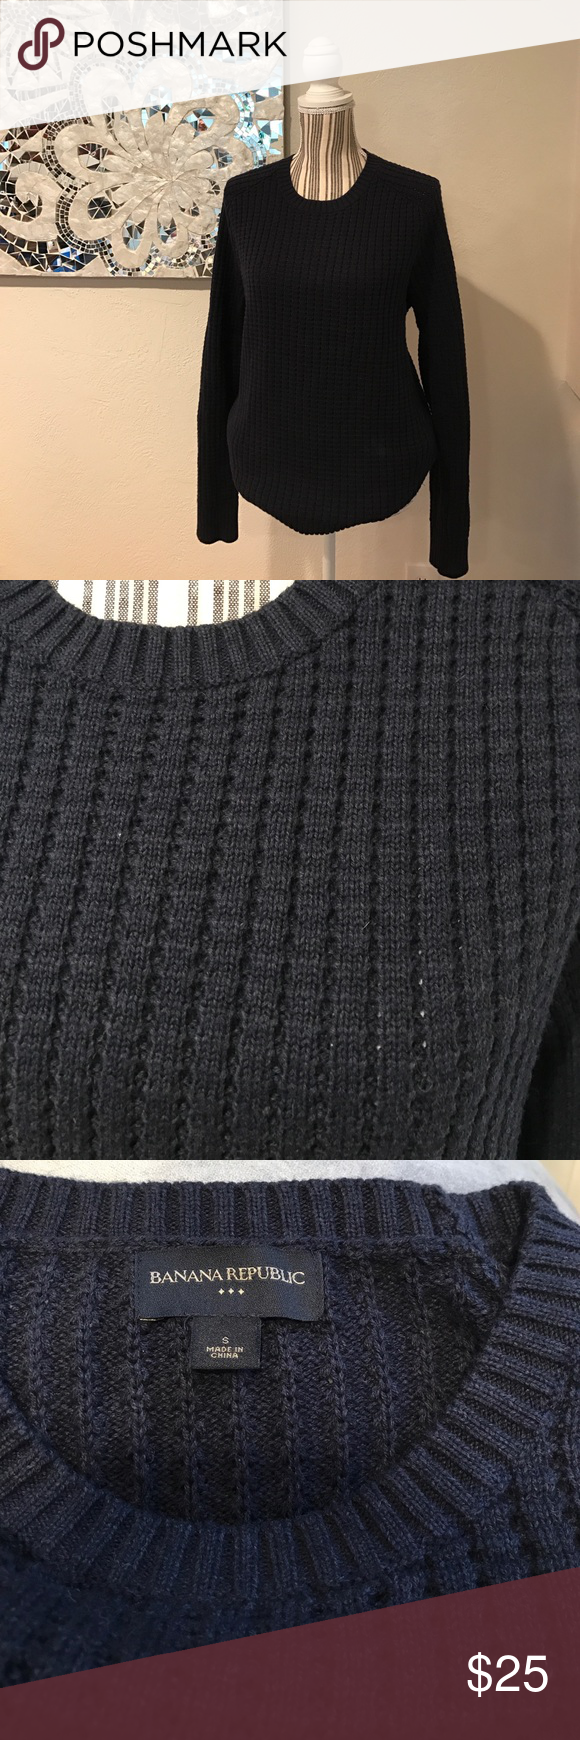 Navy blue banana republic men's sweater Like new men's banana republic sweater. Would look very nice with a button down underneath and a pair of jeans. Great date night sweater! This has only been worn one time. Banana Republic Sweaters Crewneck